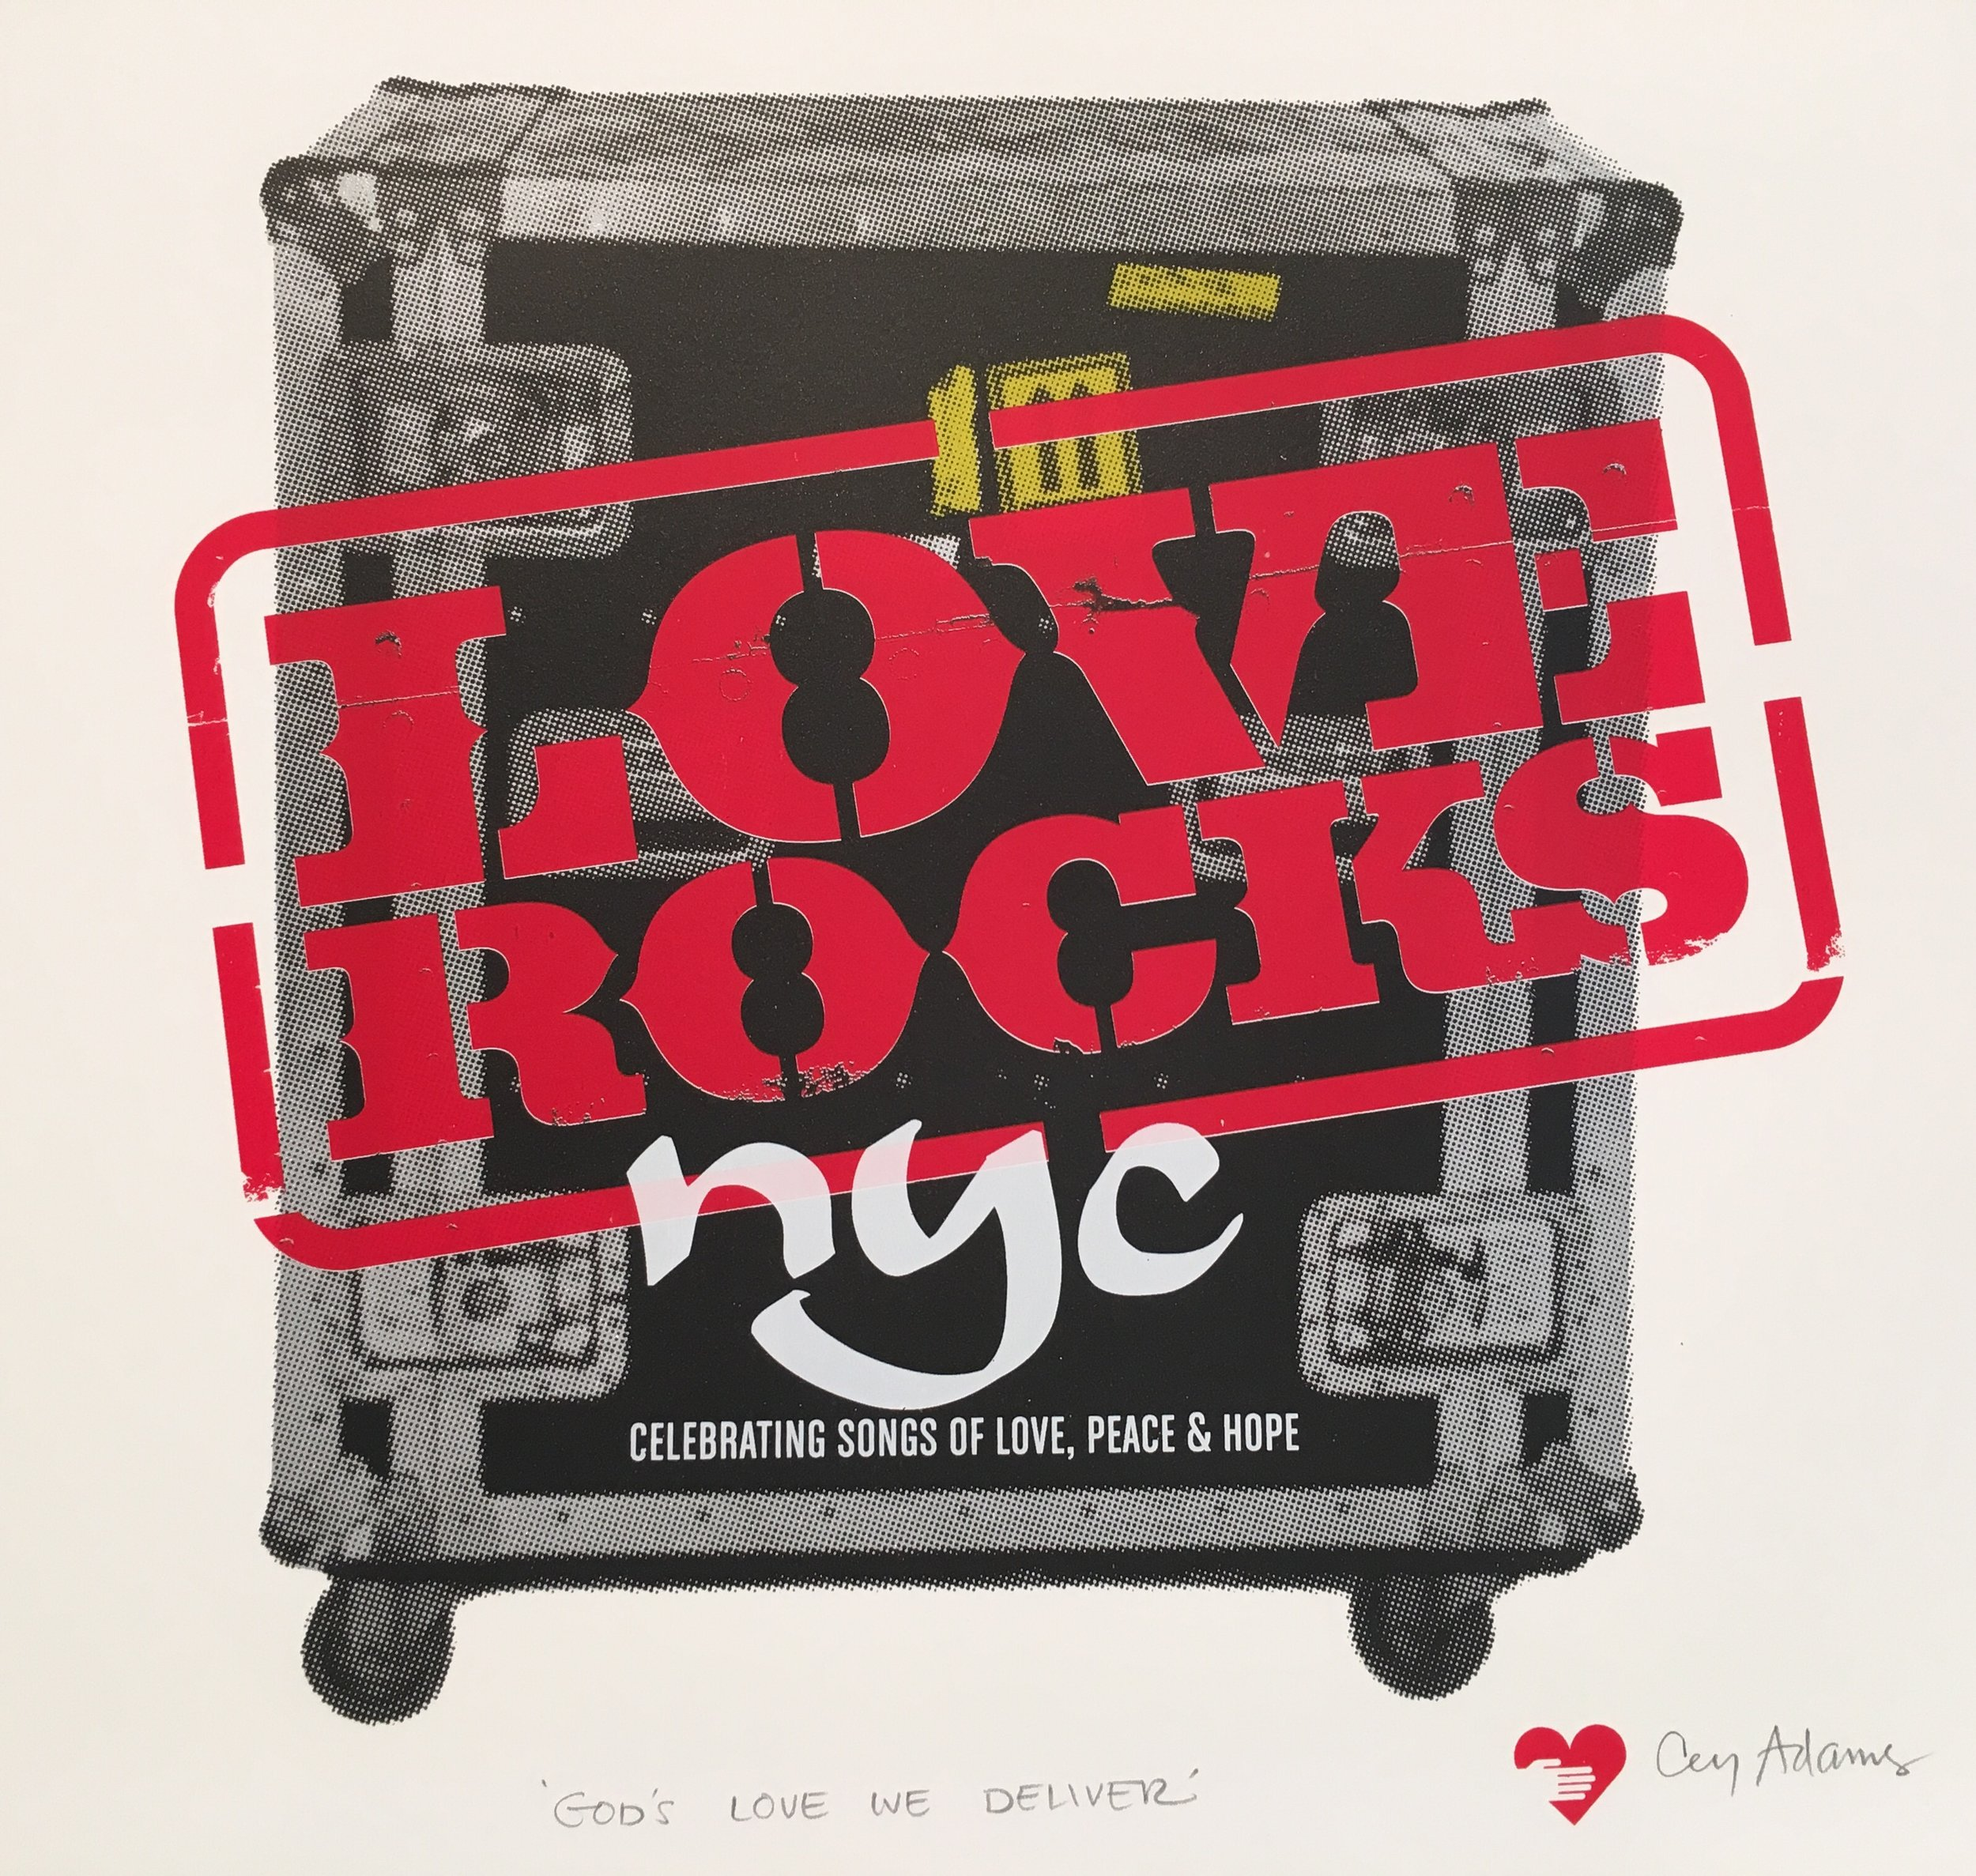 """Love Rocks,"" Cey Adams, 2017 on Coventry Rag. An edition of 100 produced exclusively for God's Love We Deliver, NYC"